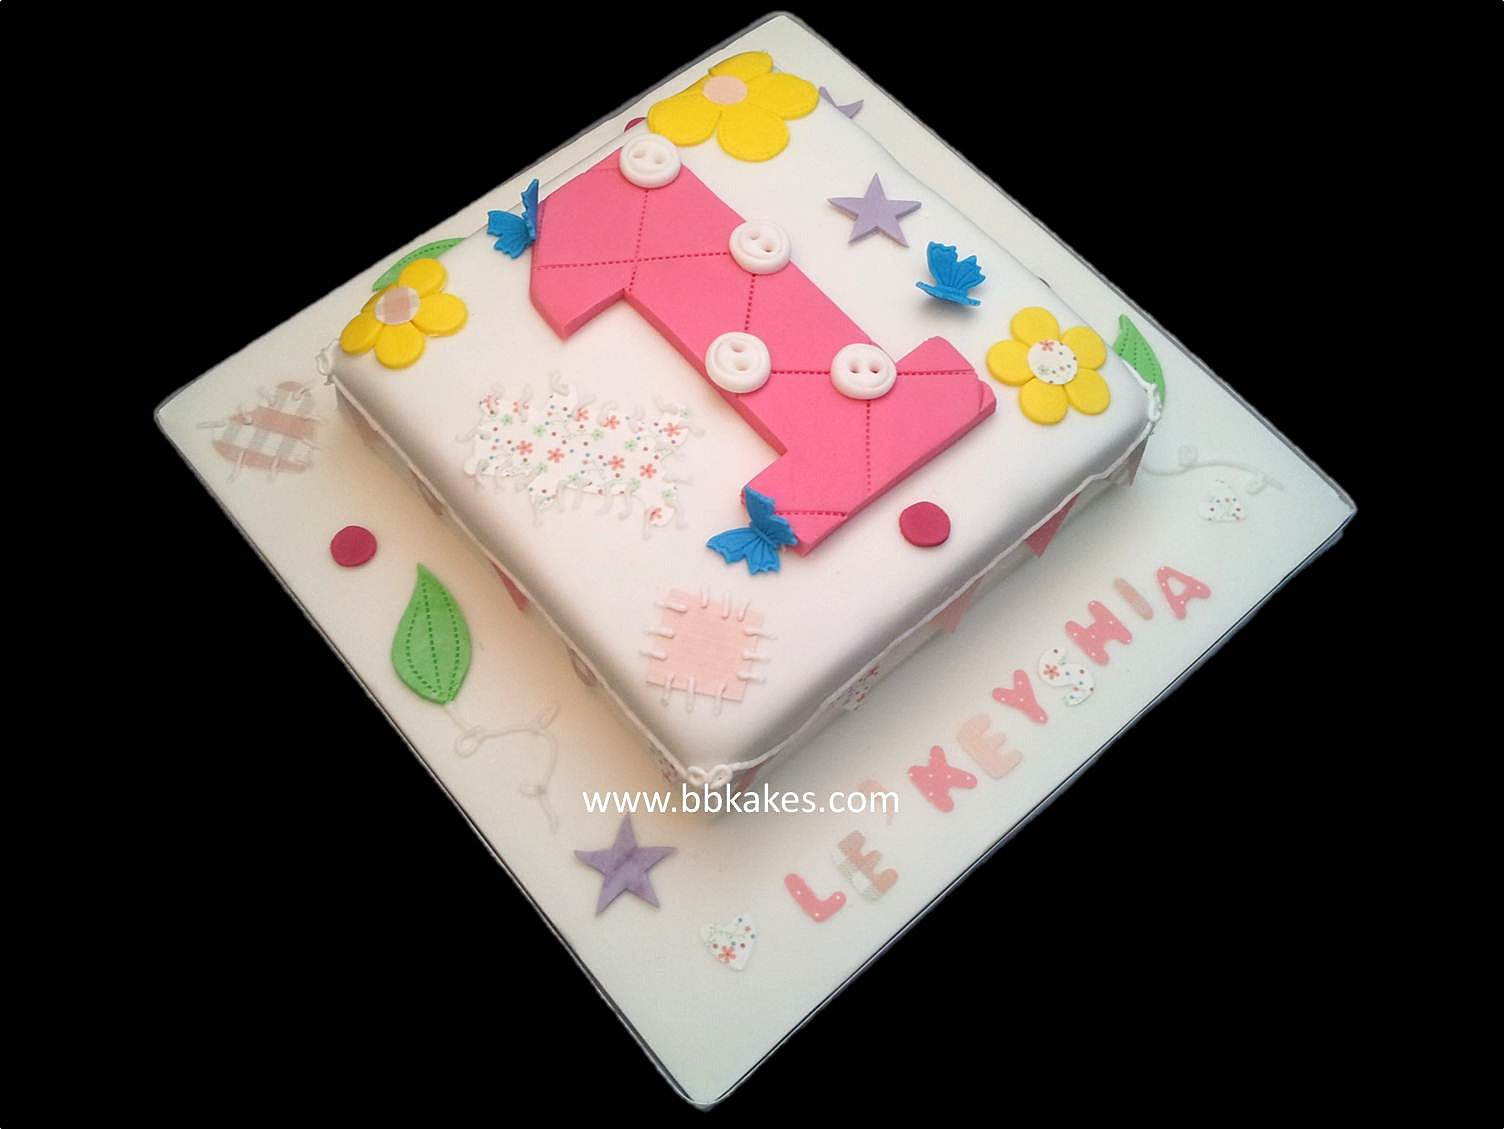 Birthday Cake Designs In Square : Cakes, North London, Corporate Cakes and Cupcakes Baby ...